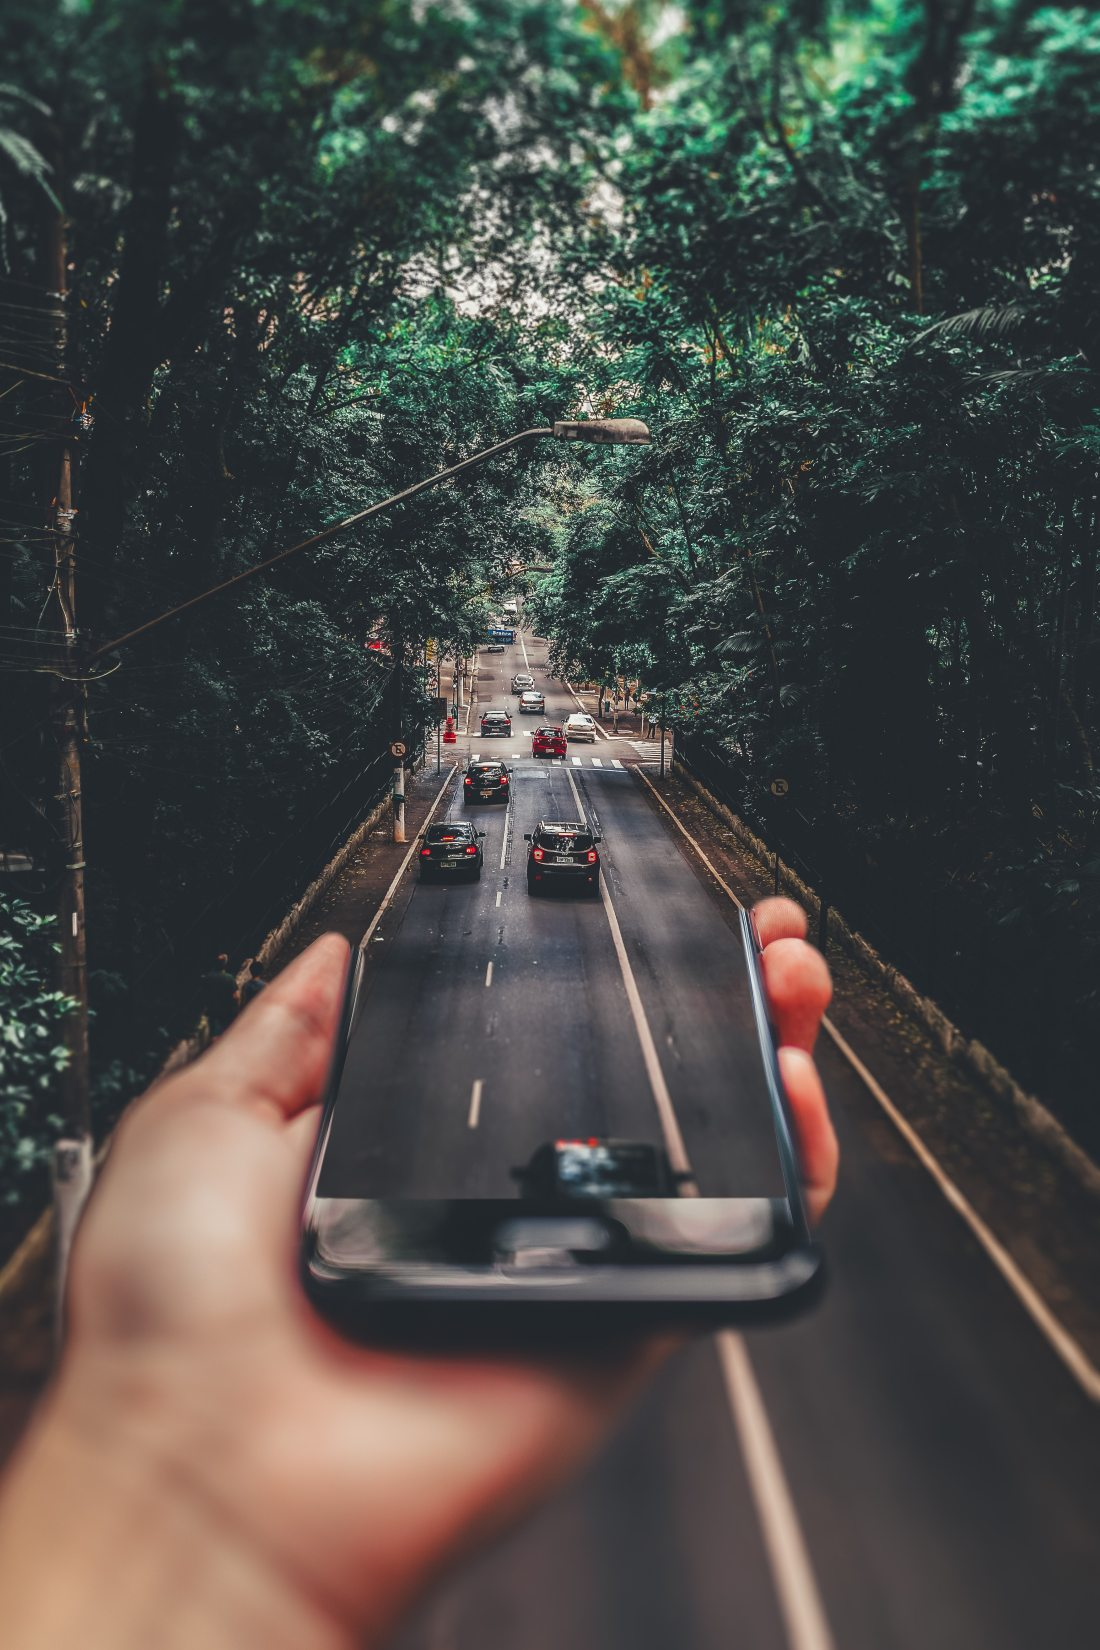 a hand holding a smart phone turns into a road with cars